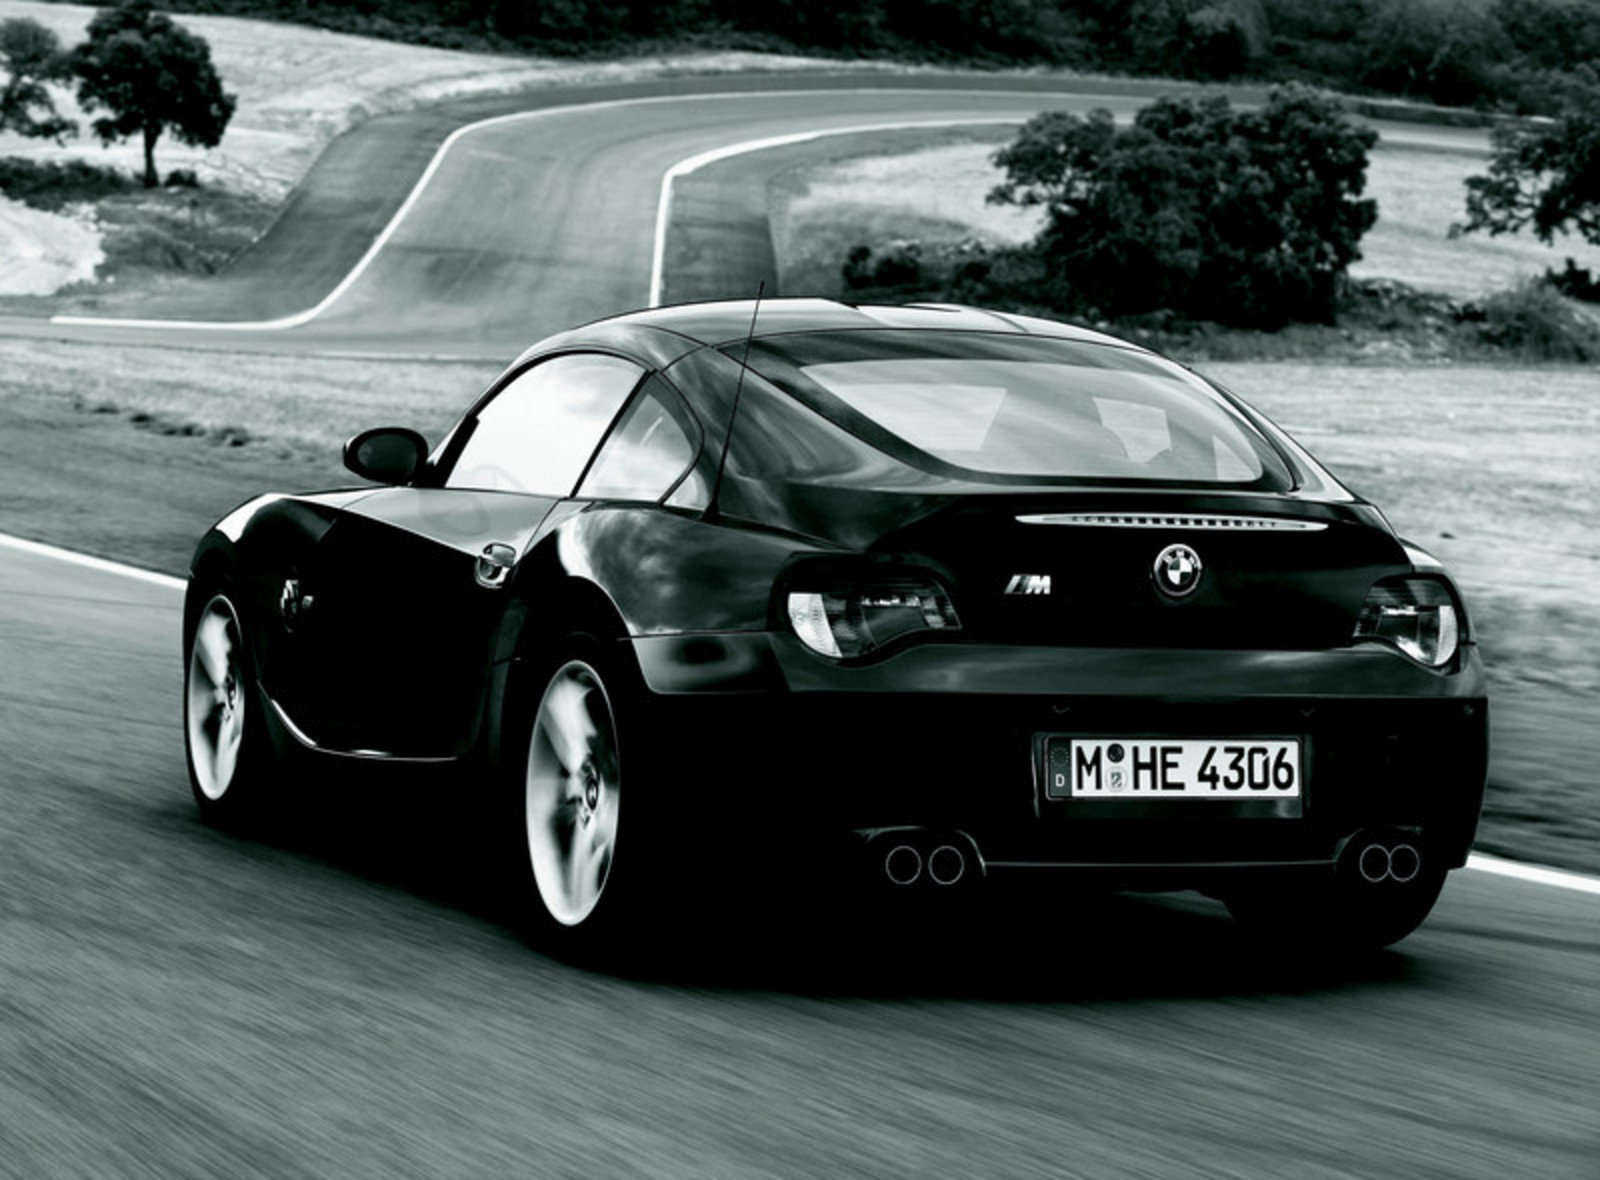 2007 Bmw Z4 M Coupe Picture 35727 Car Review Top Speed